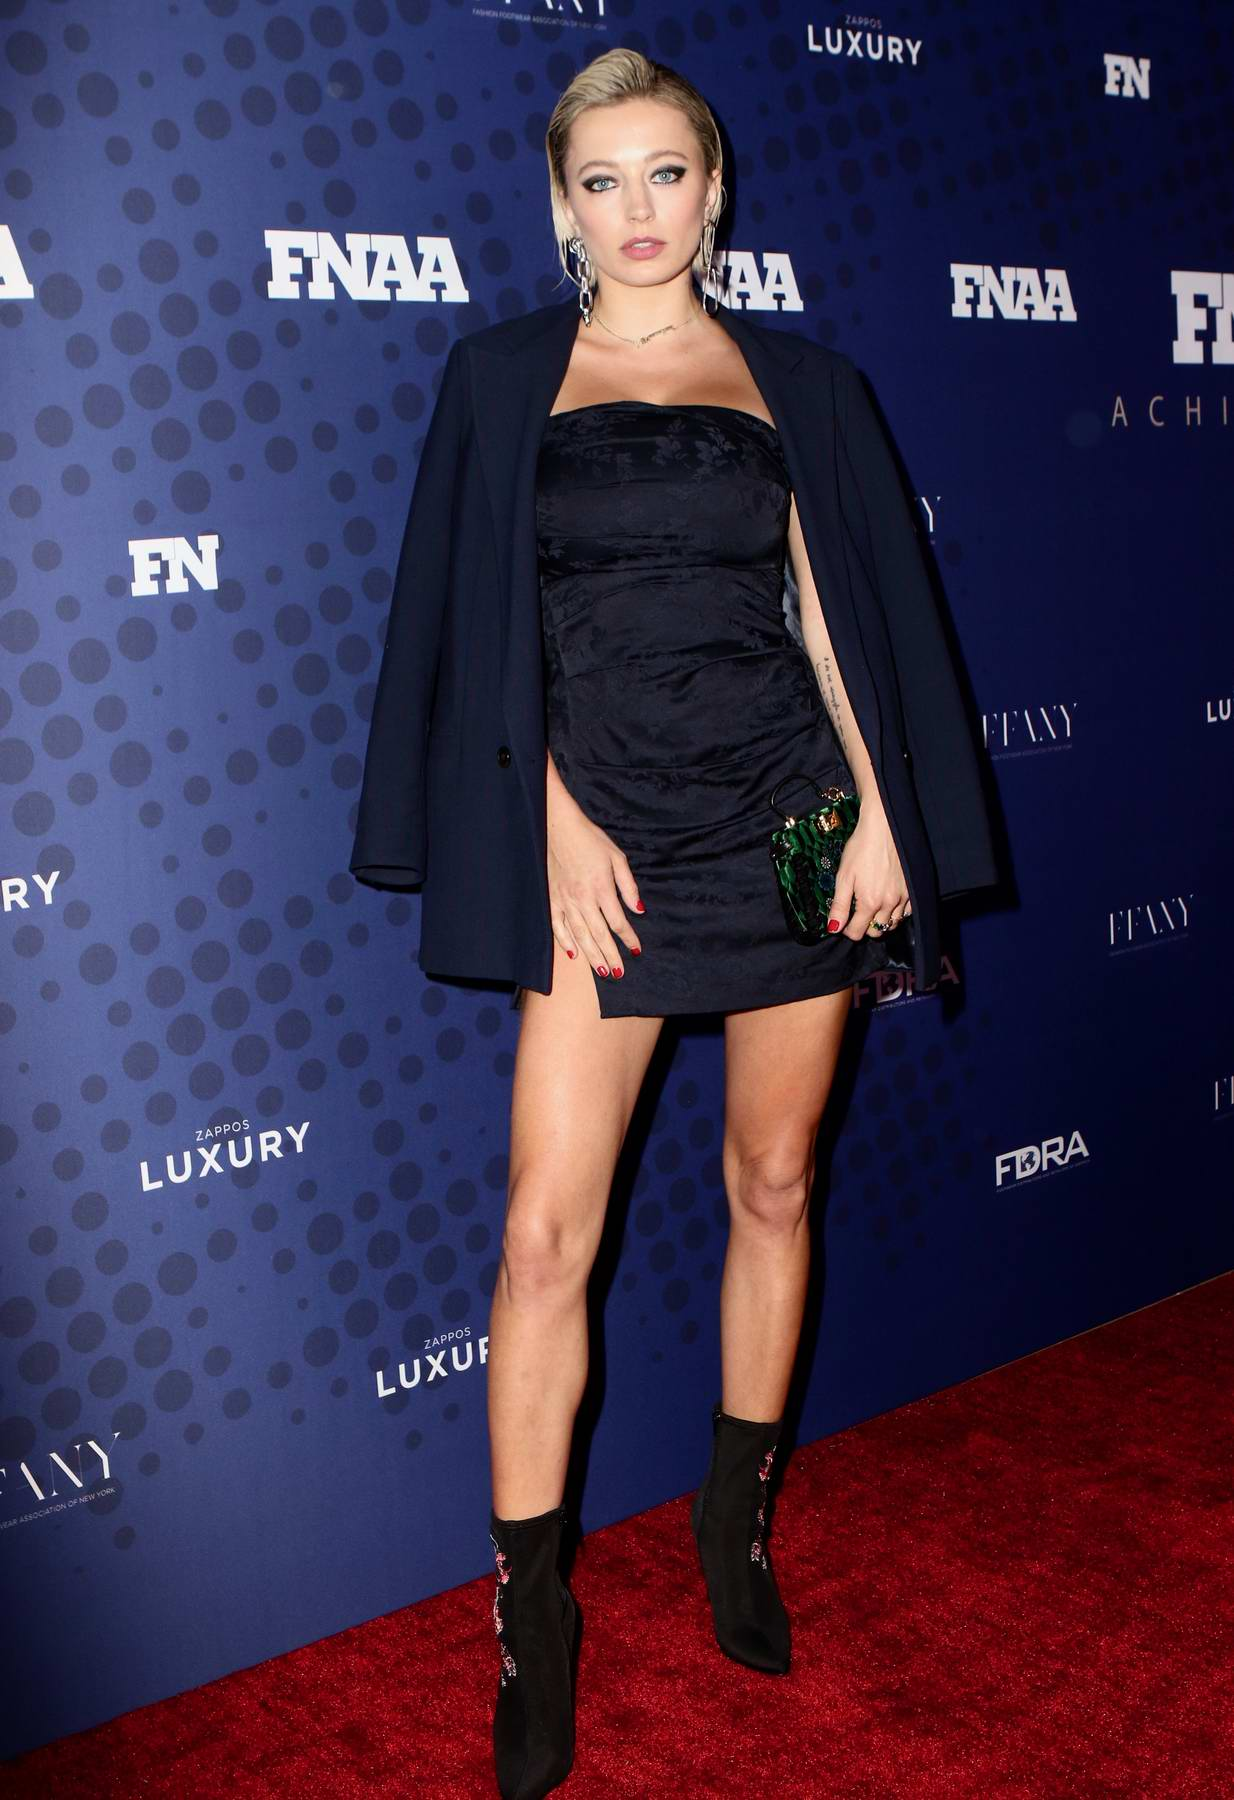 Caroline Vreeland at the 31st Annual Footwear News Achievement Awards in New York